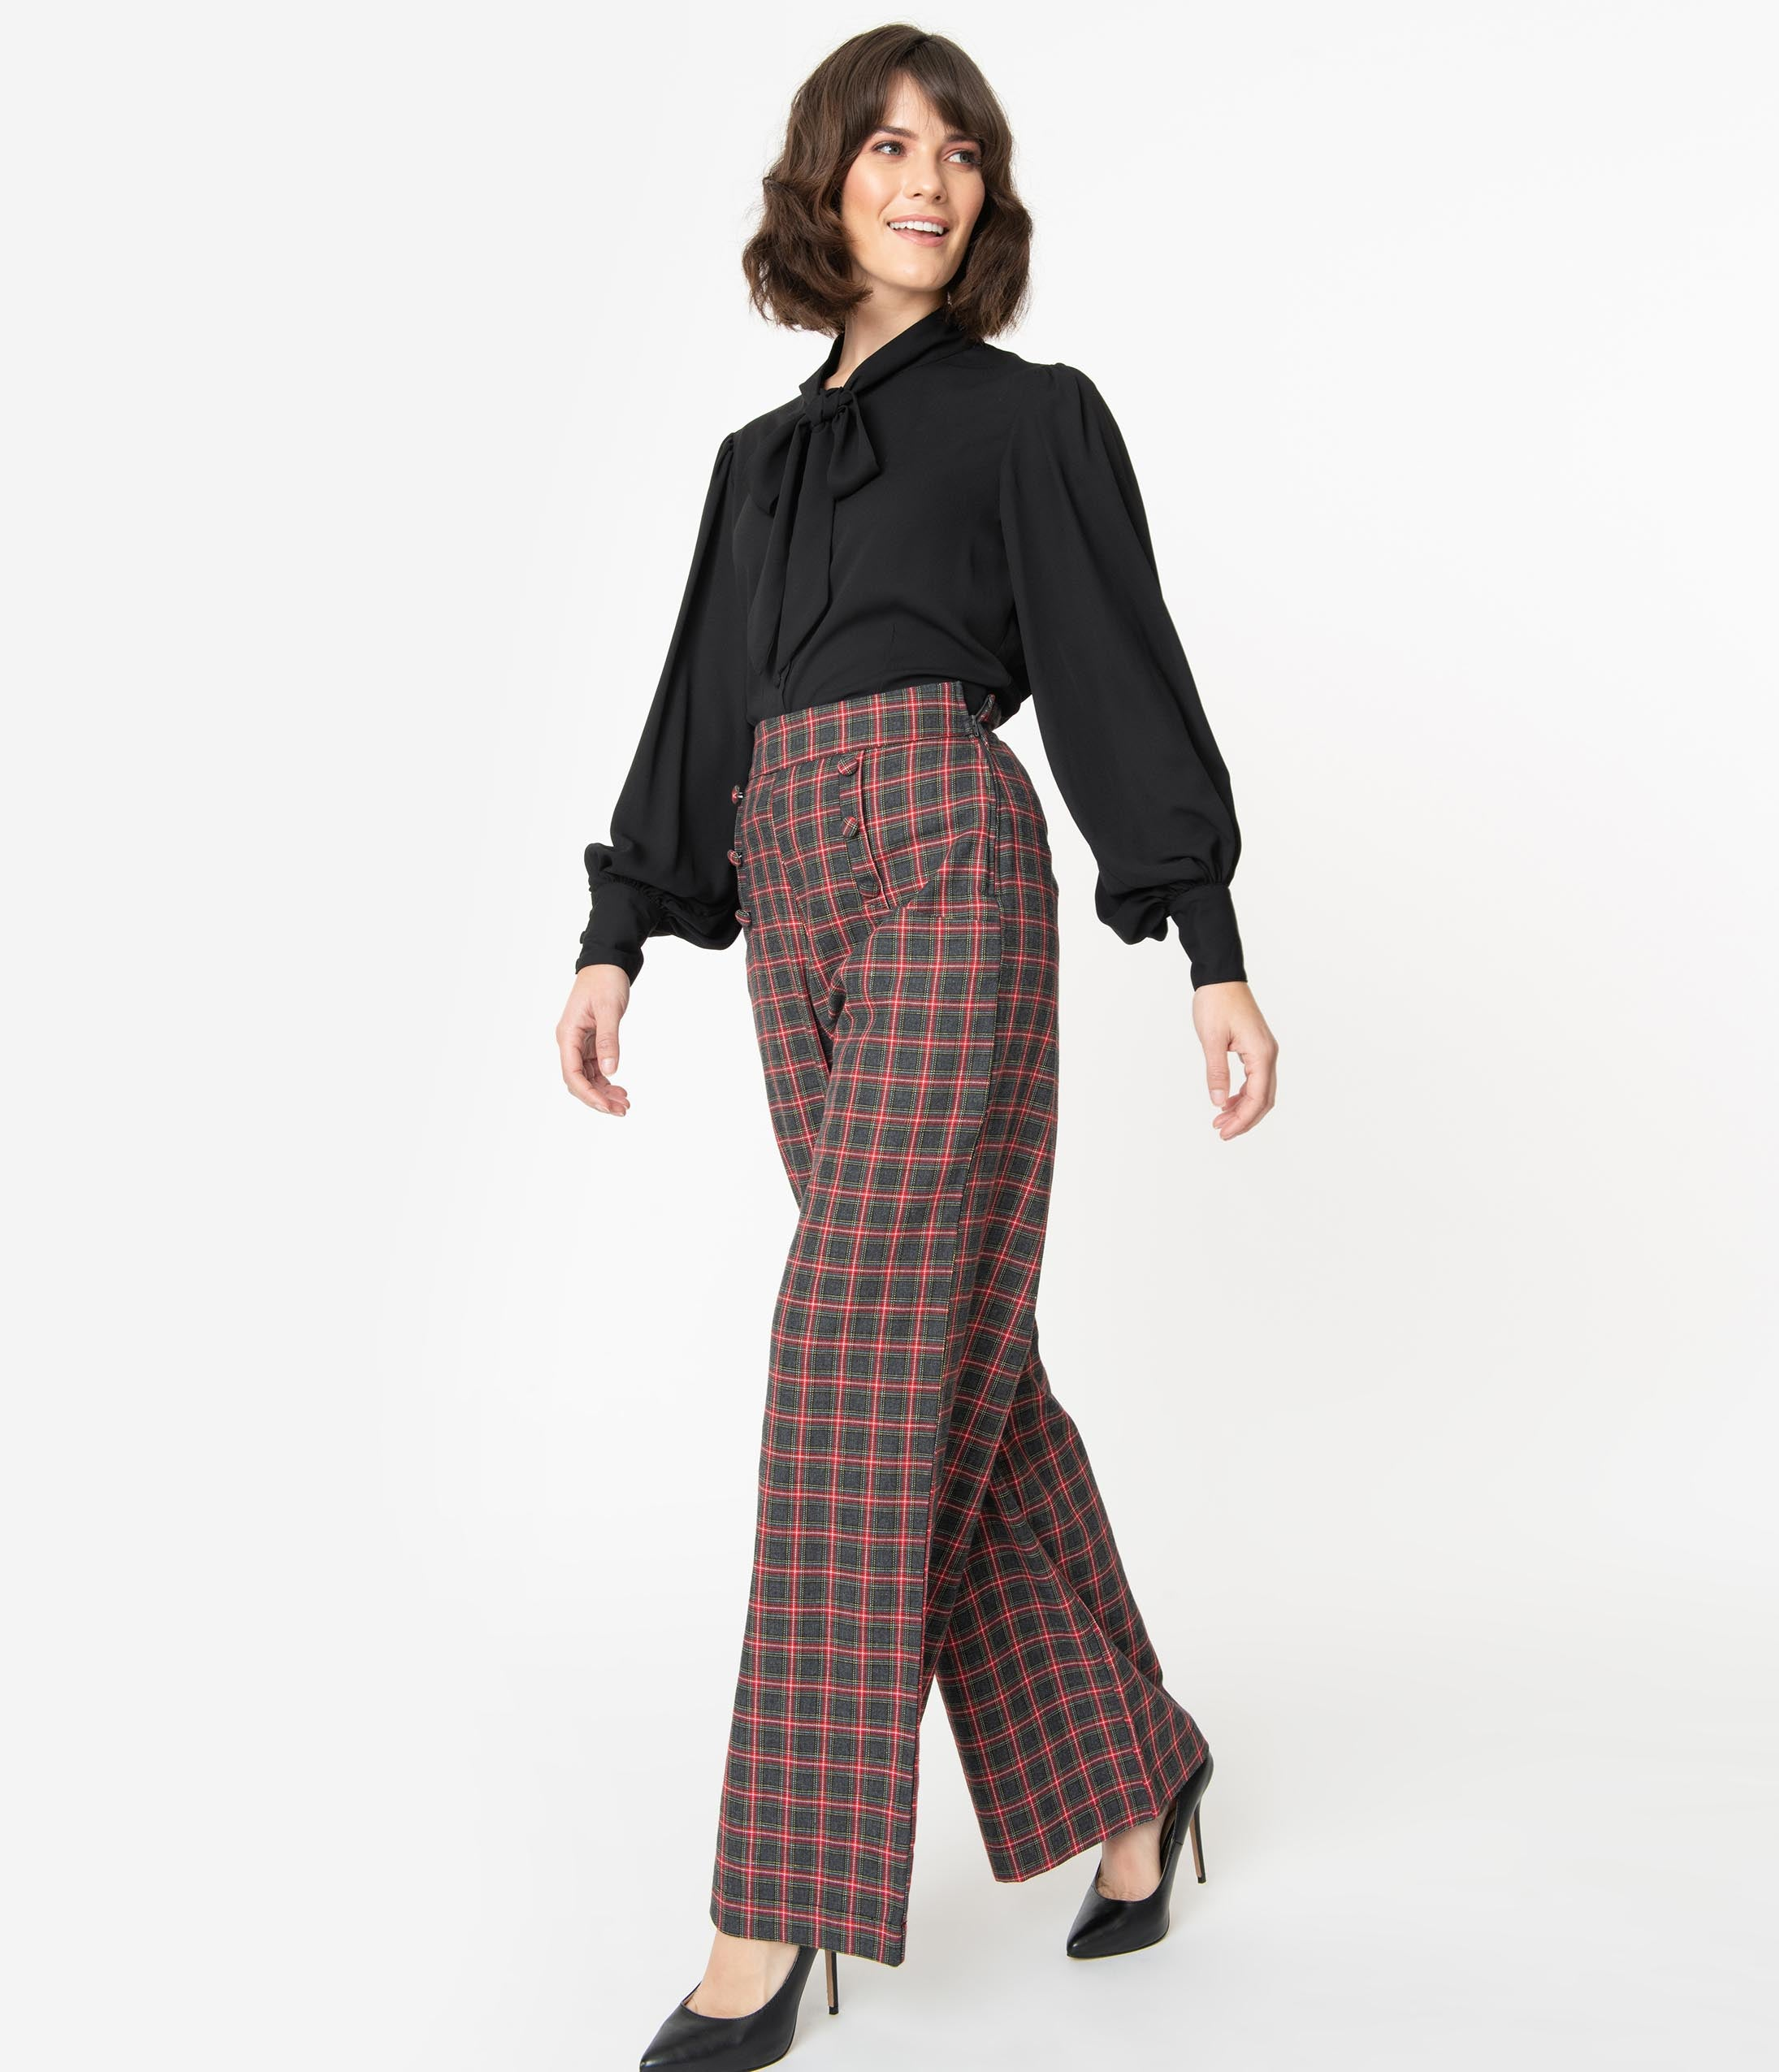 1950s Pants History for Women Unique Vintage 1940S Grey  Red Plaid High Waist Ginger Pants $68.00 AT vintagedancer.com